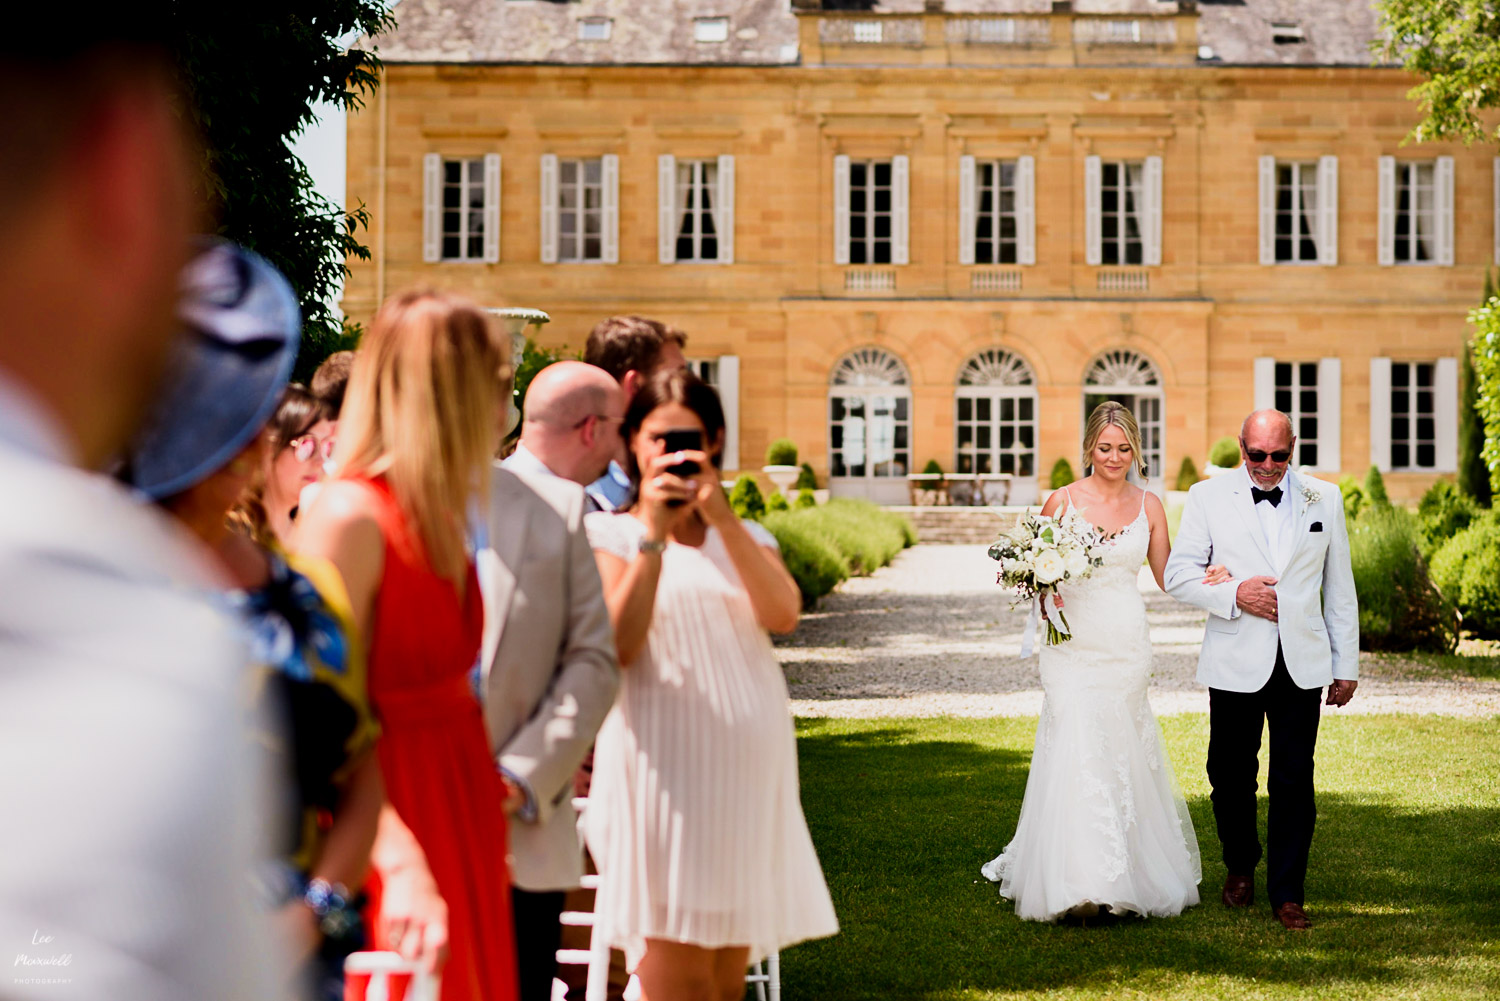 Brides entrance at Chateau La Durantie